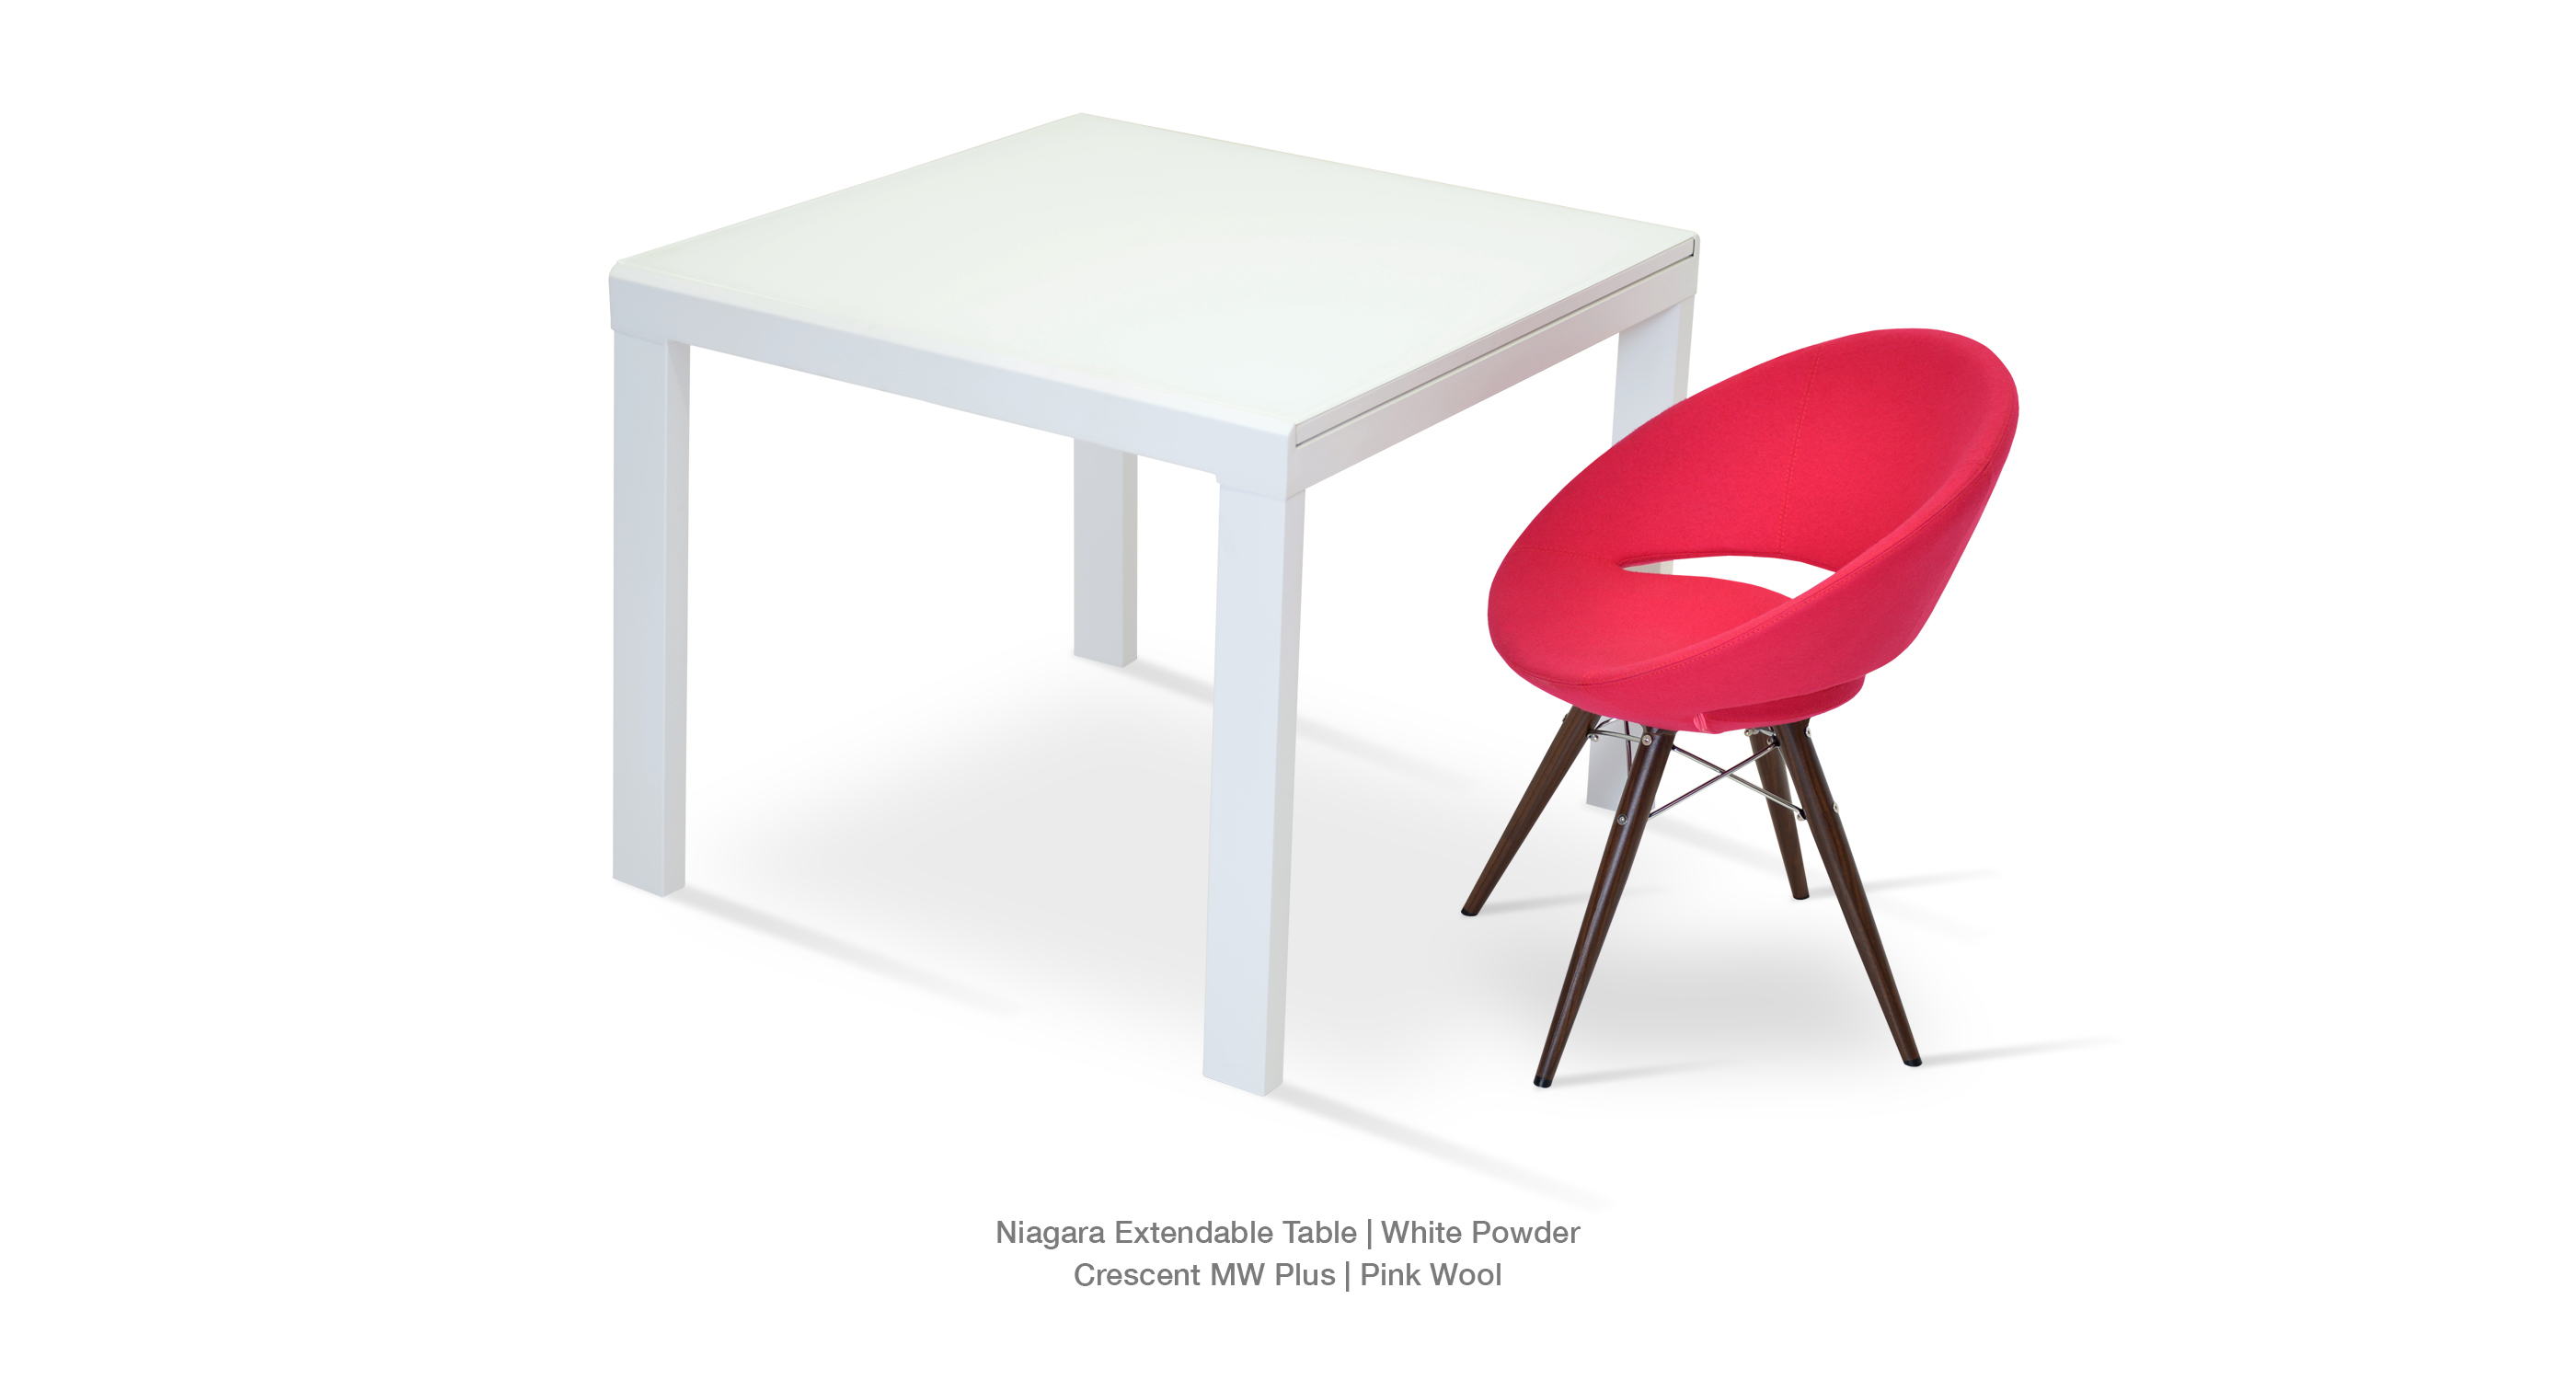 Niagara Table Crescent Mw